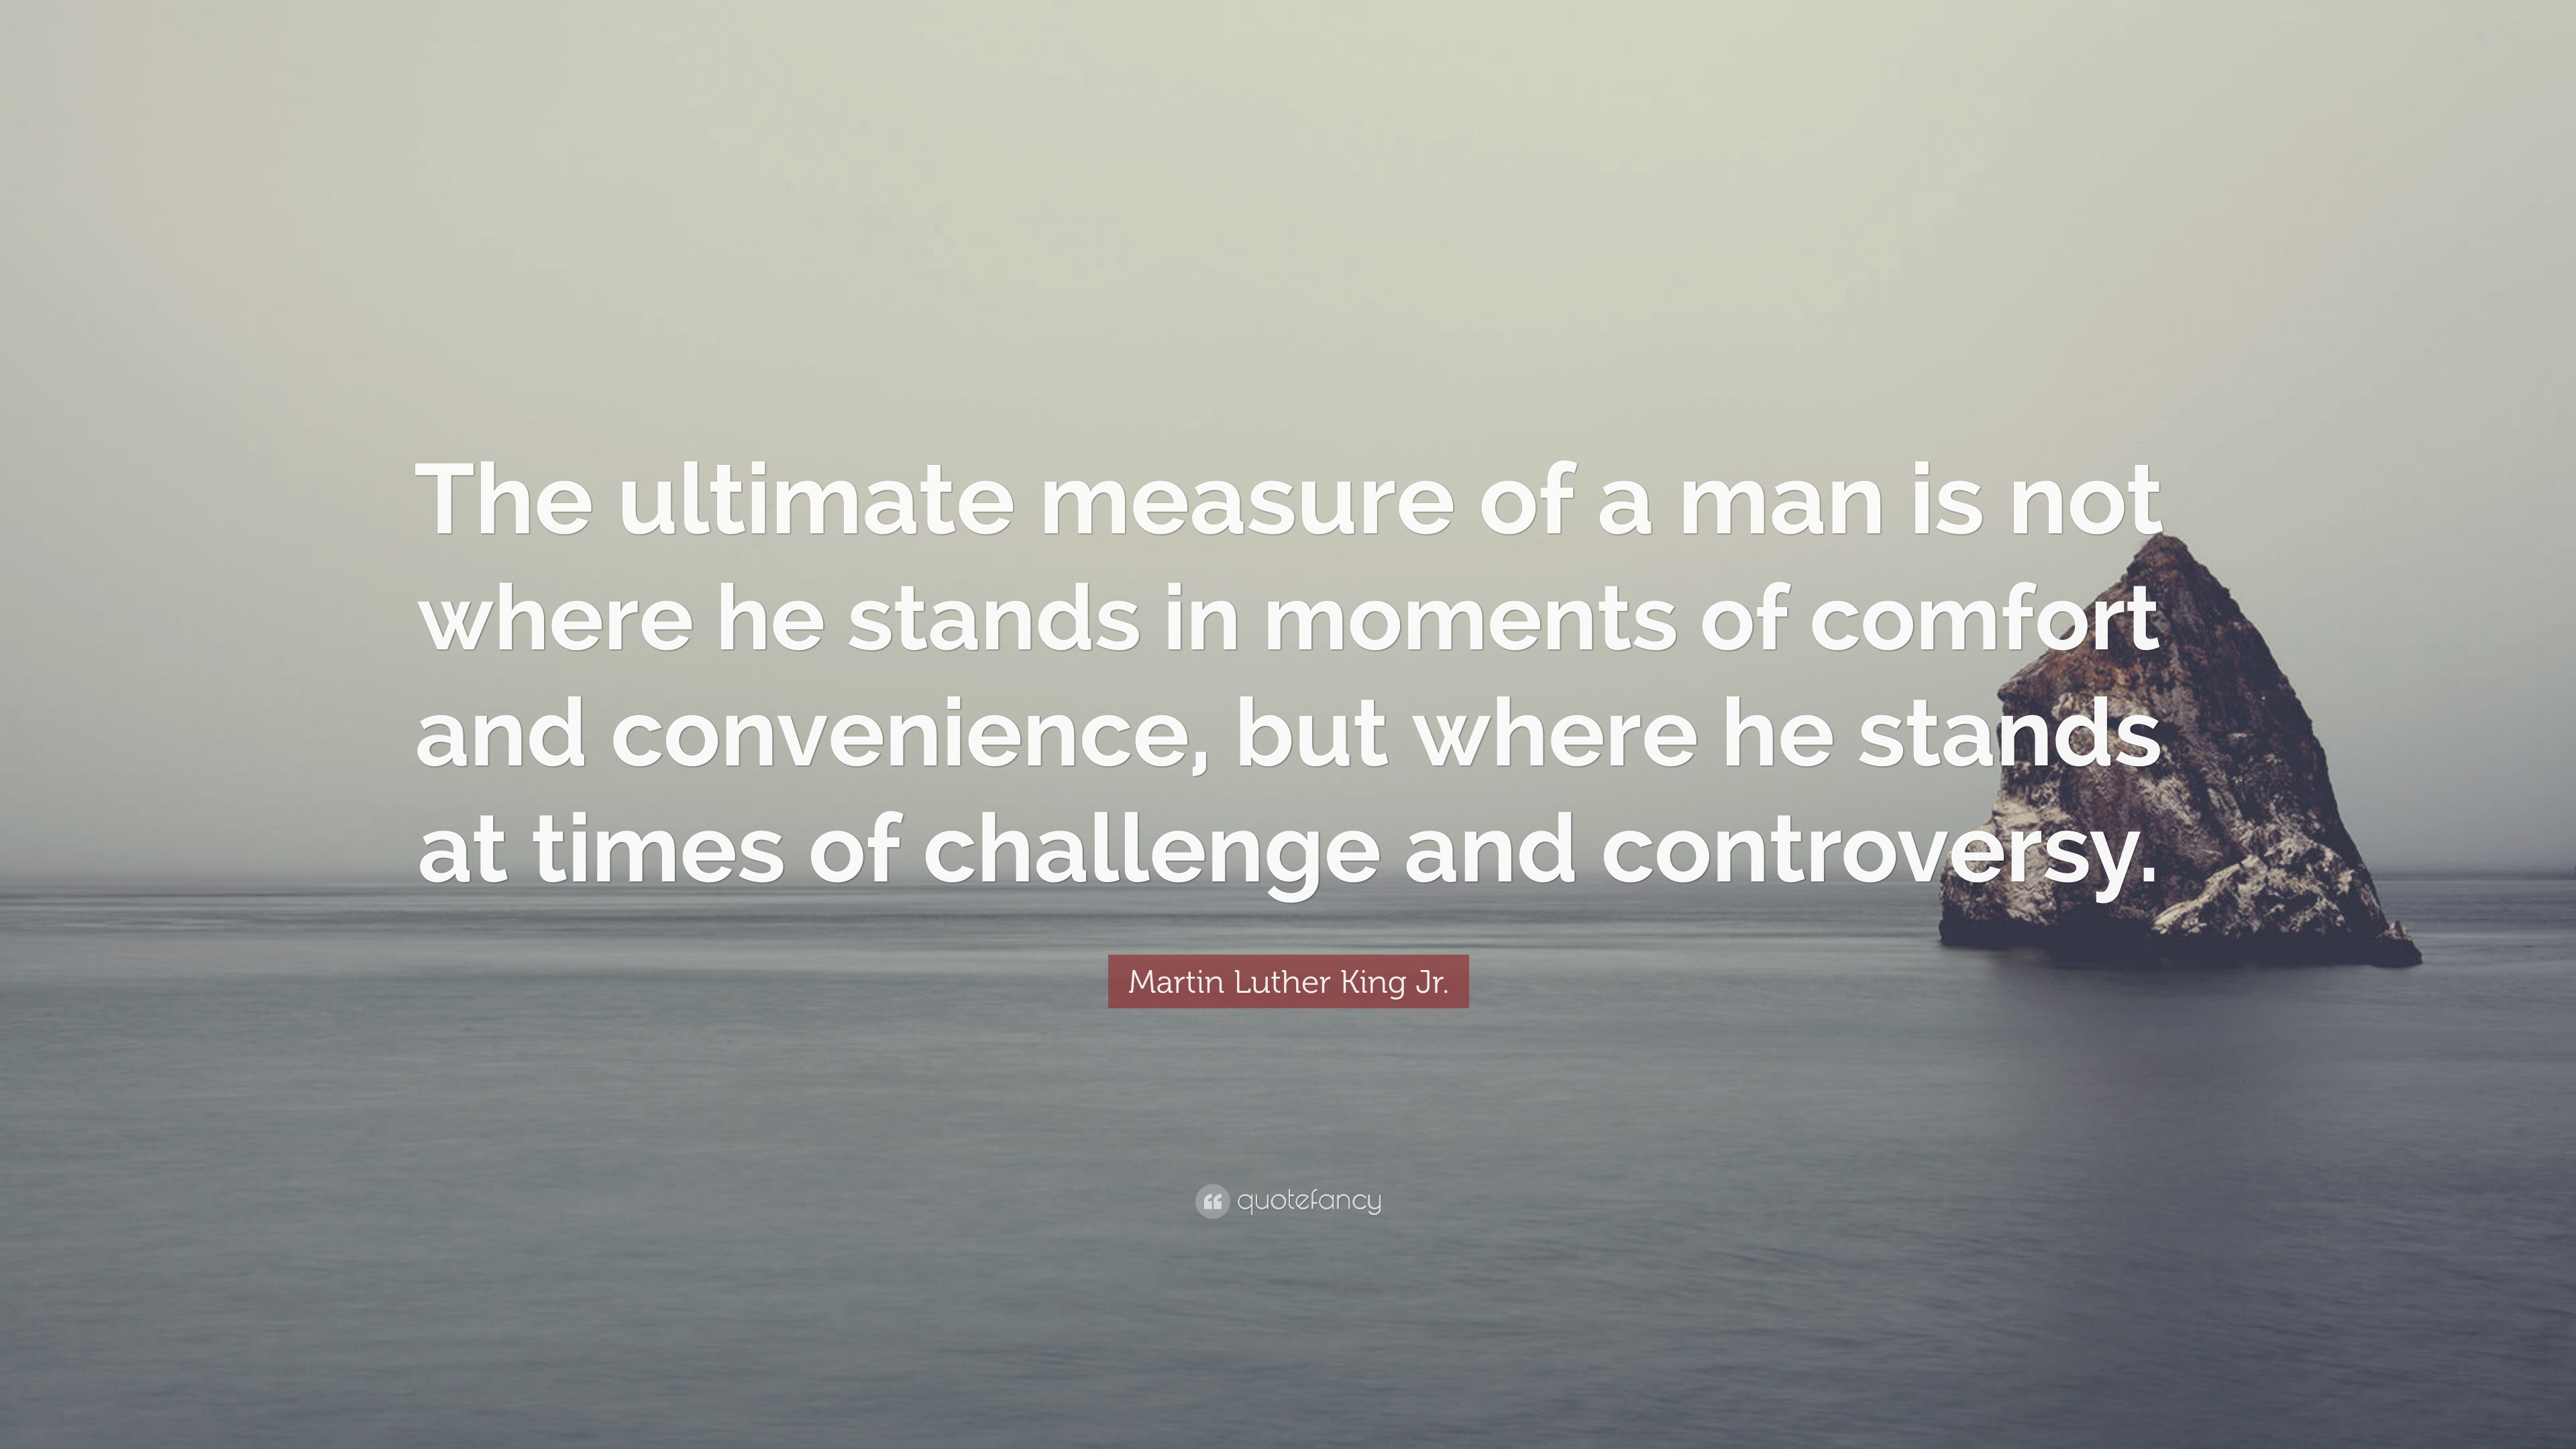 martin luther king jr the ultimate measure of a man 31 martin luther king jr quotes to inspire greatness in you he had a dream, and so do you 31 inspirational quotes to help you remember the power of a vision  the ultimate measure of a man .